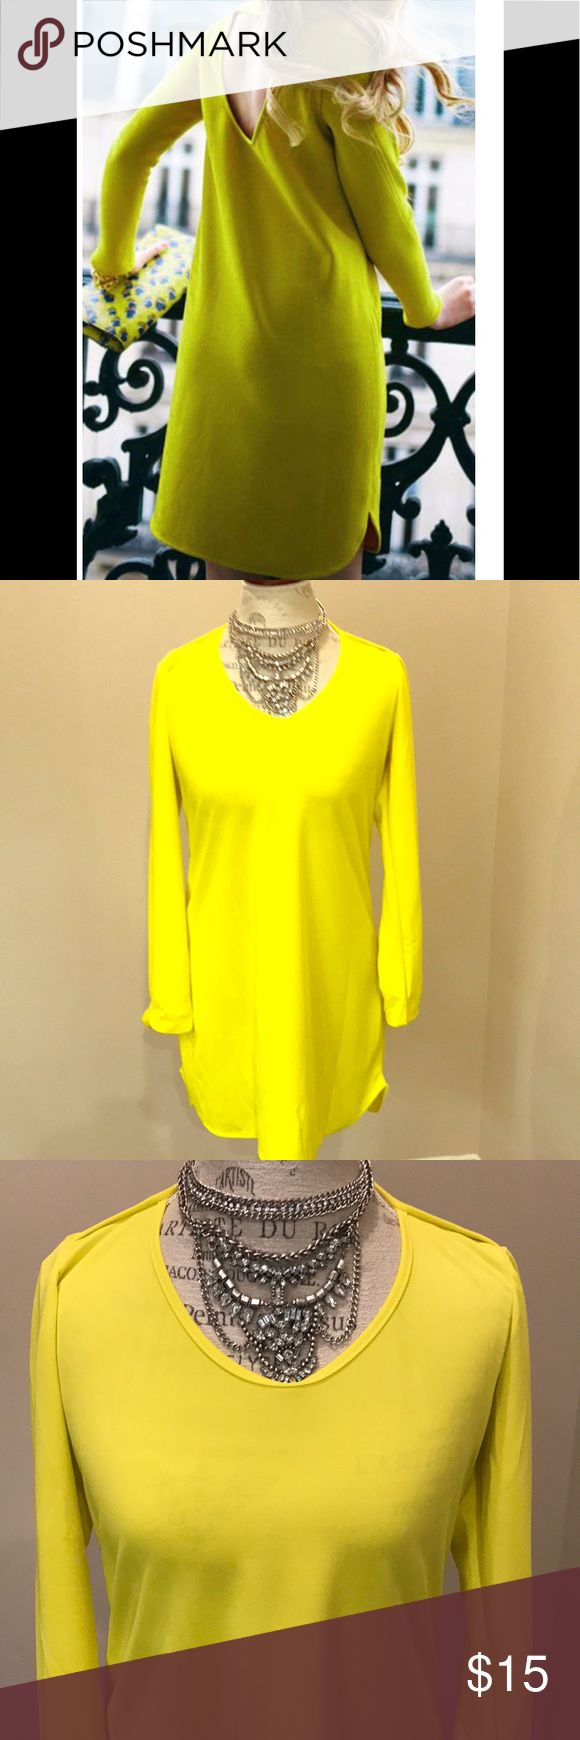 Follow my ❤️ Hollow Mini Dress 👡 A great dress for date night or ladies night! Bright yellow, keyhole/heart cut out in back, long sleeves, light material. Transition to fall with thigh high black boots, a bold clutch and a statement necklace. Purchased at an online boutique and unfortunately I don't have the body type to fit this dress. Never worn. No tags. Dresses Mini